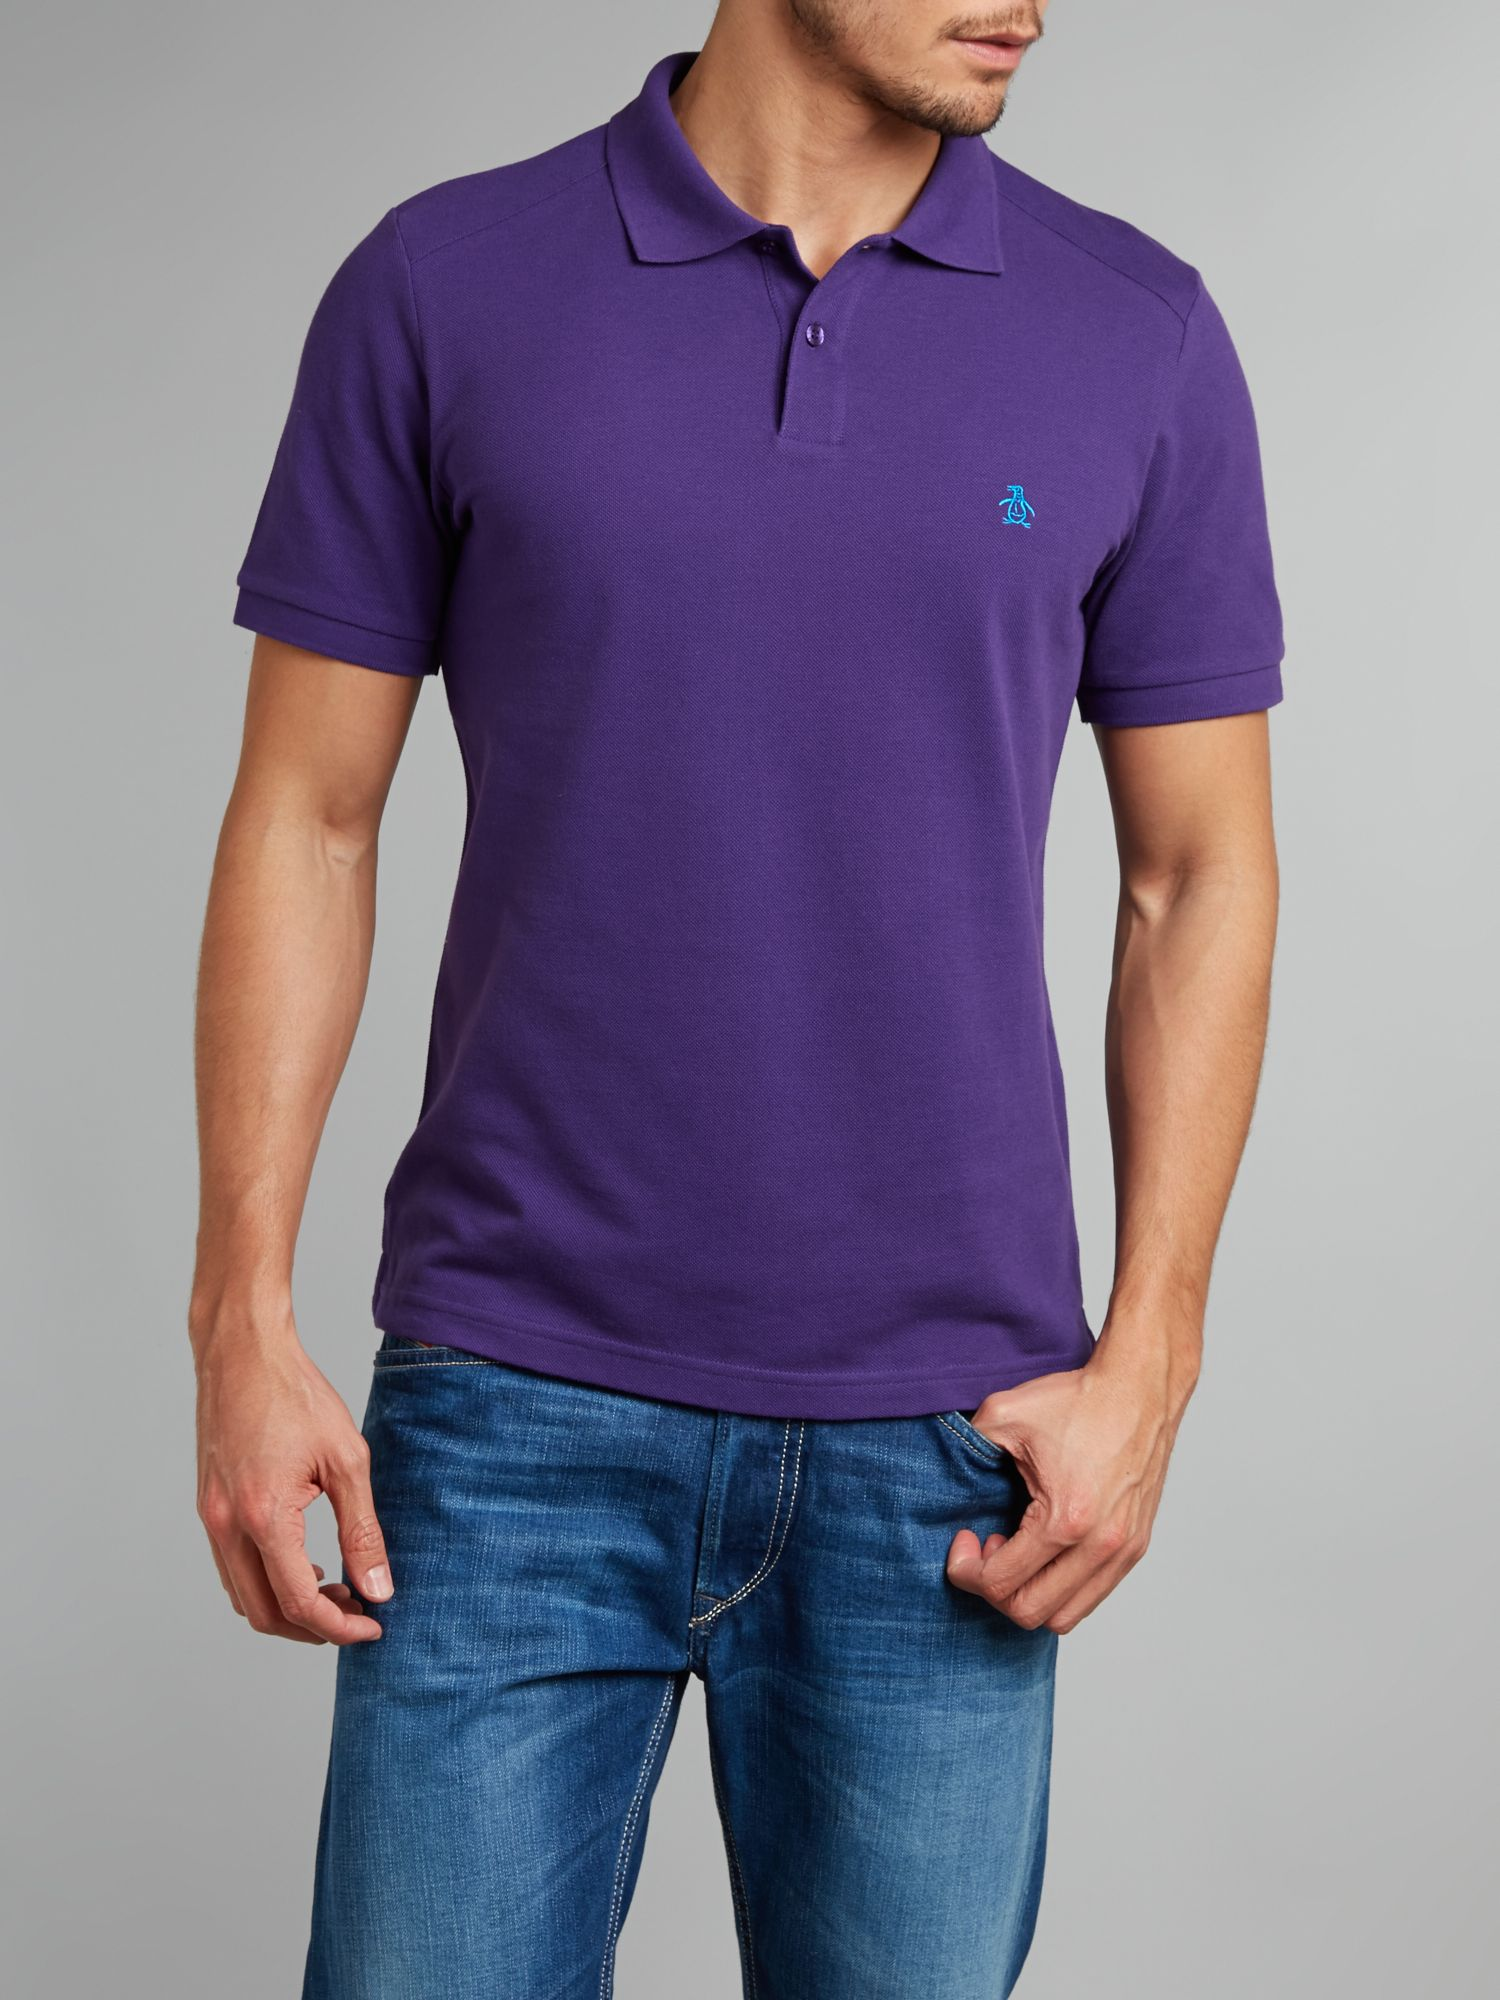 The daddy oxford polo shirt